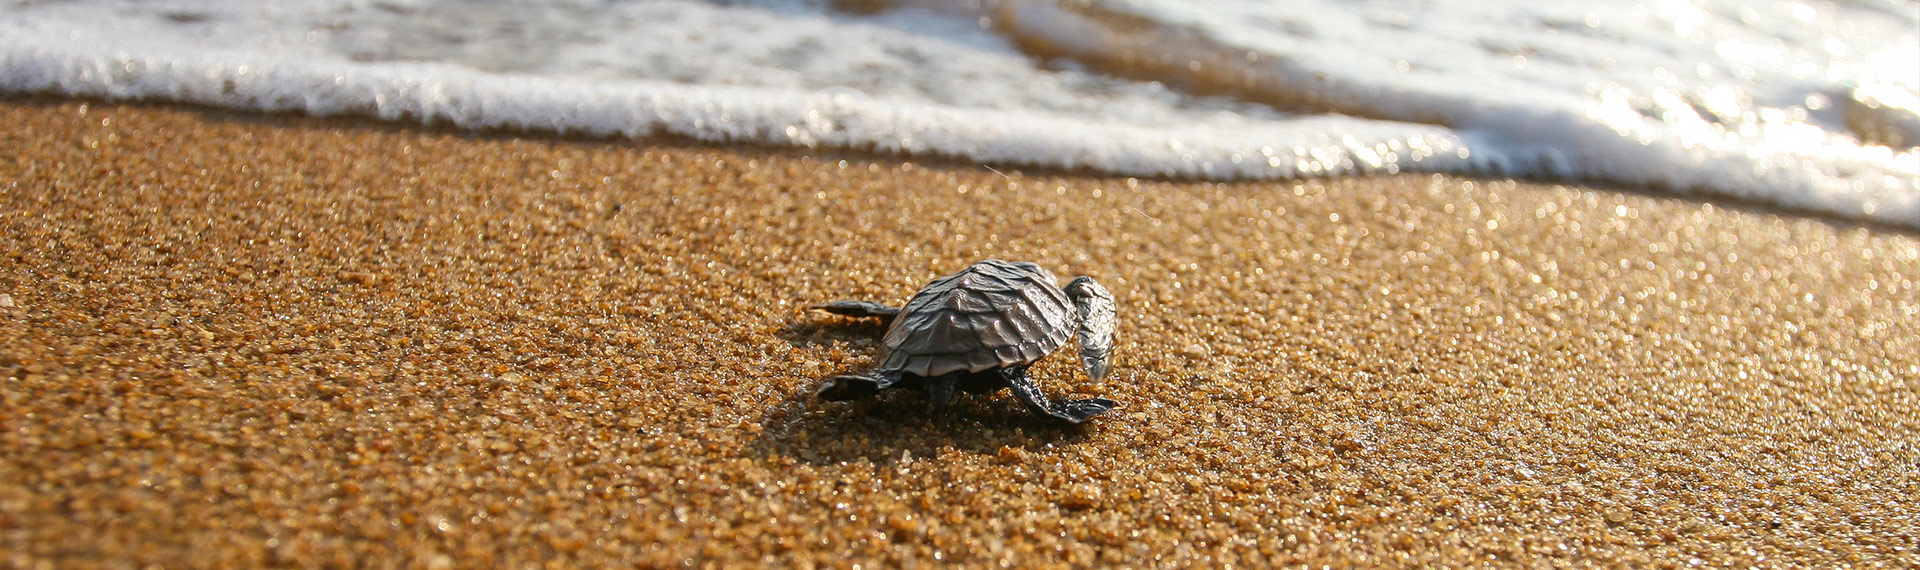 Save the turtle is a of the fun things to do at sea in the summer